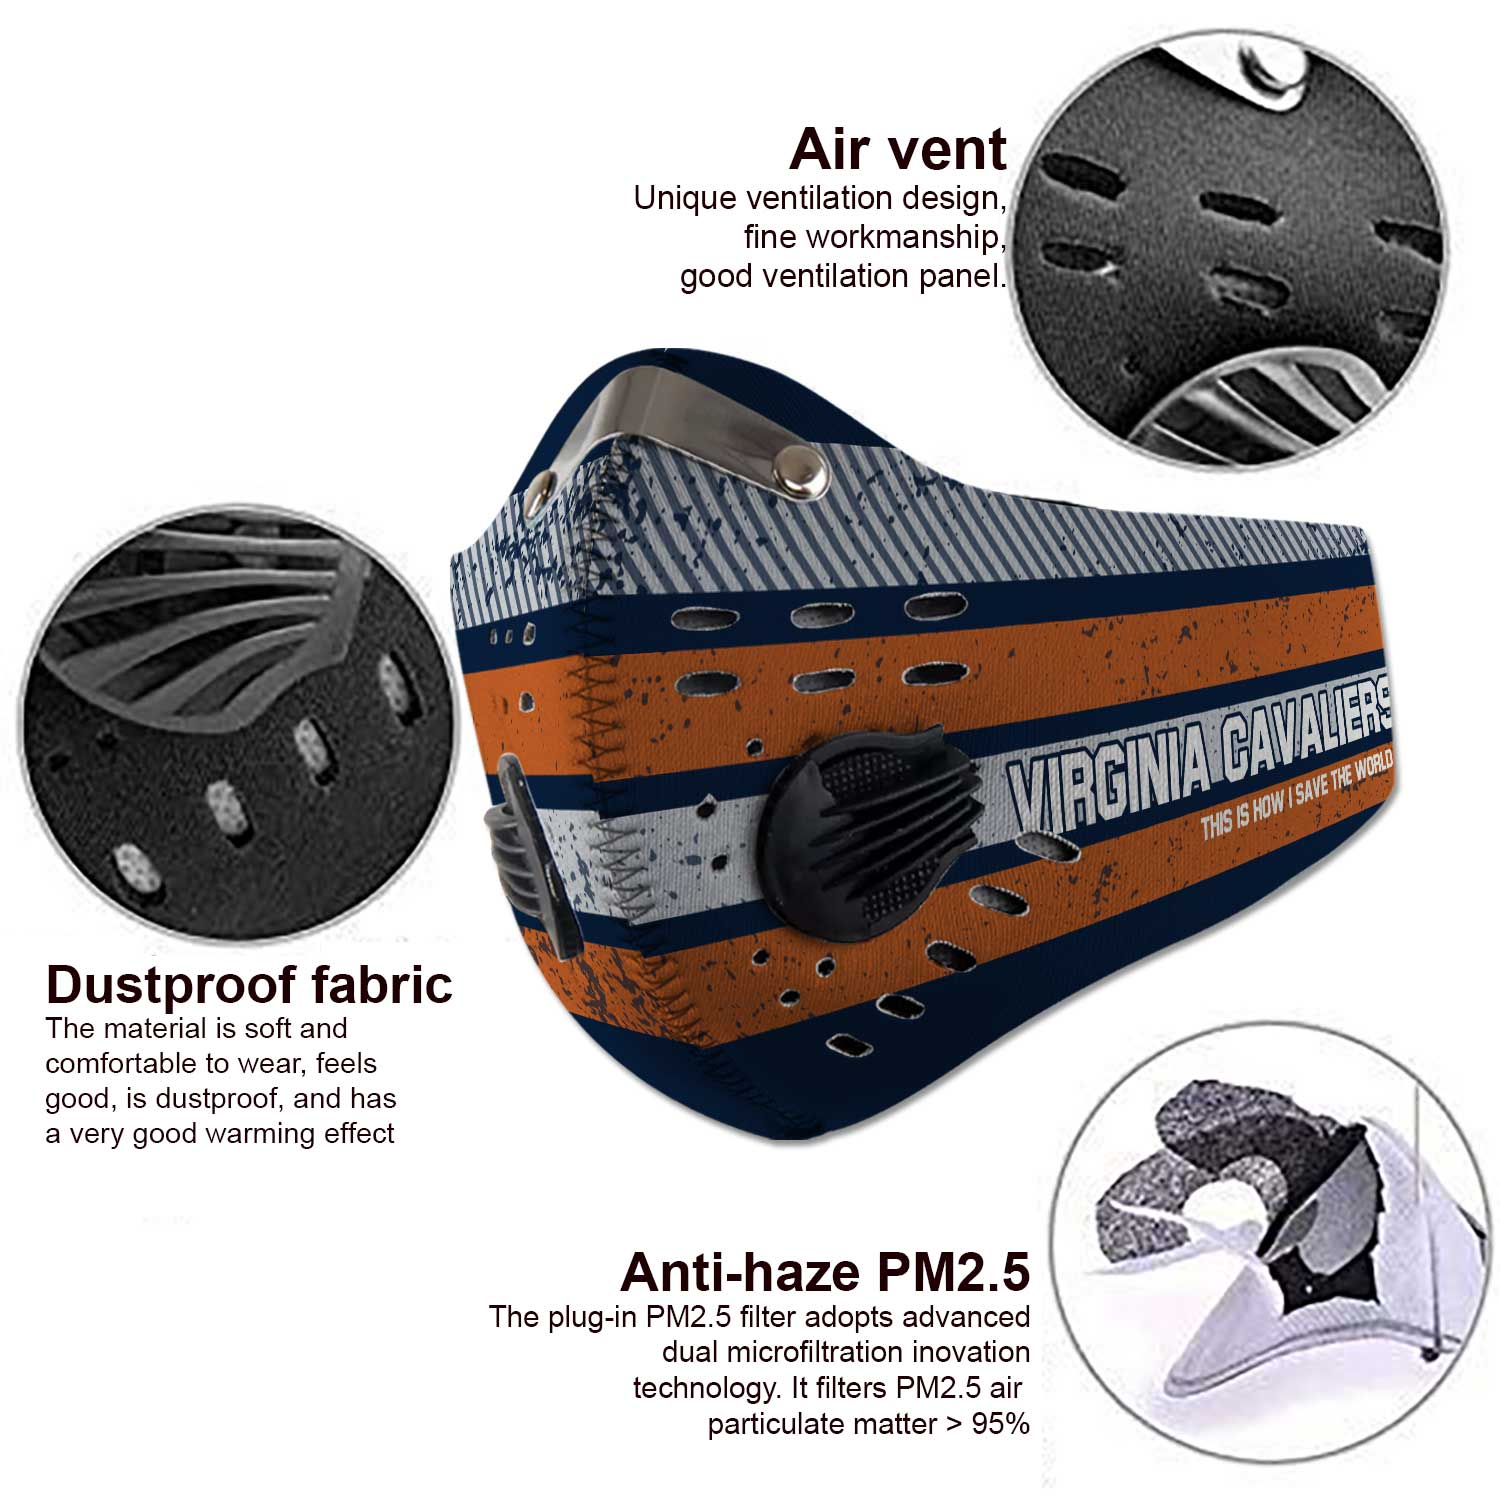 Virginia cavaliers this is how i save the world carbon filter face mask 3